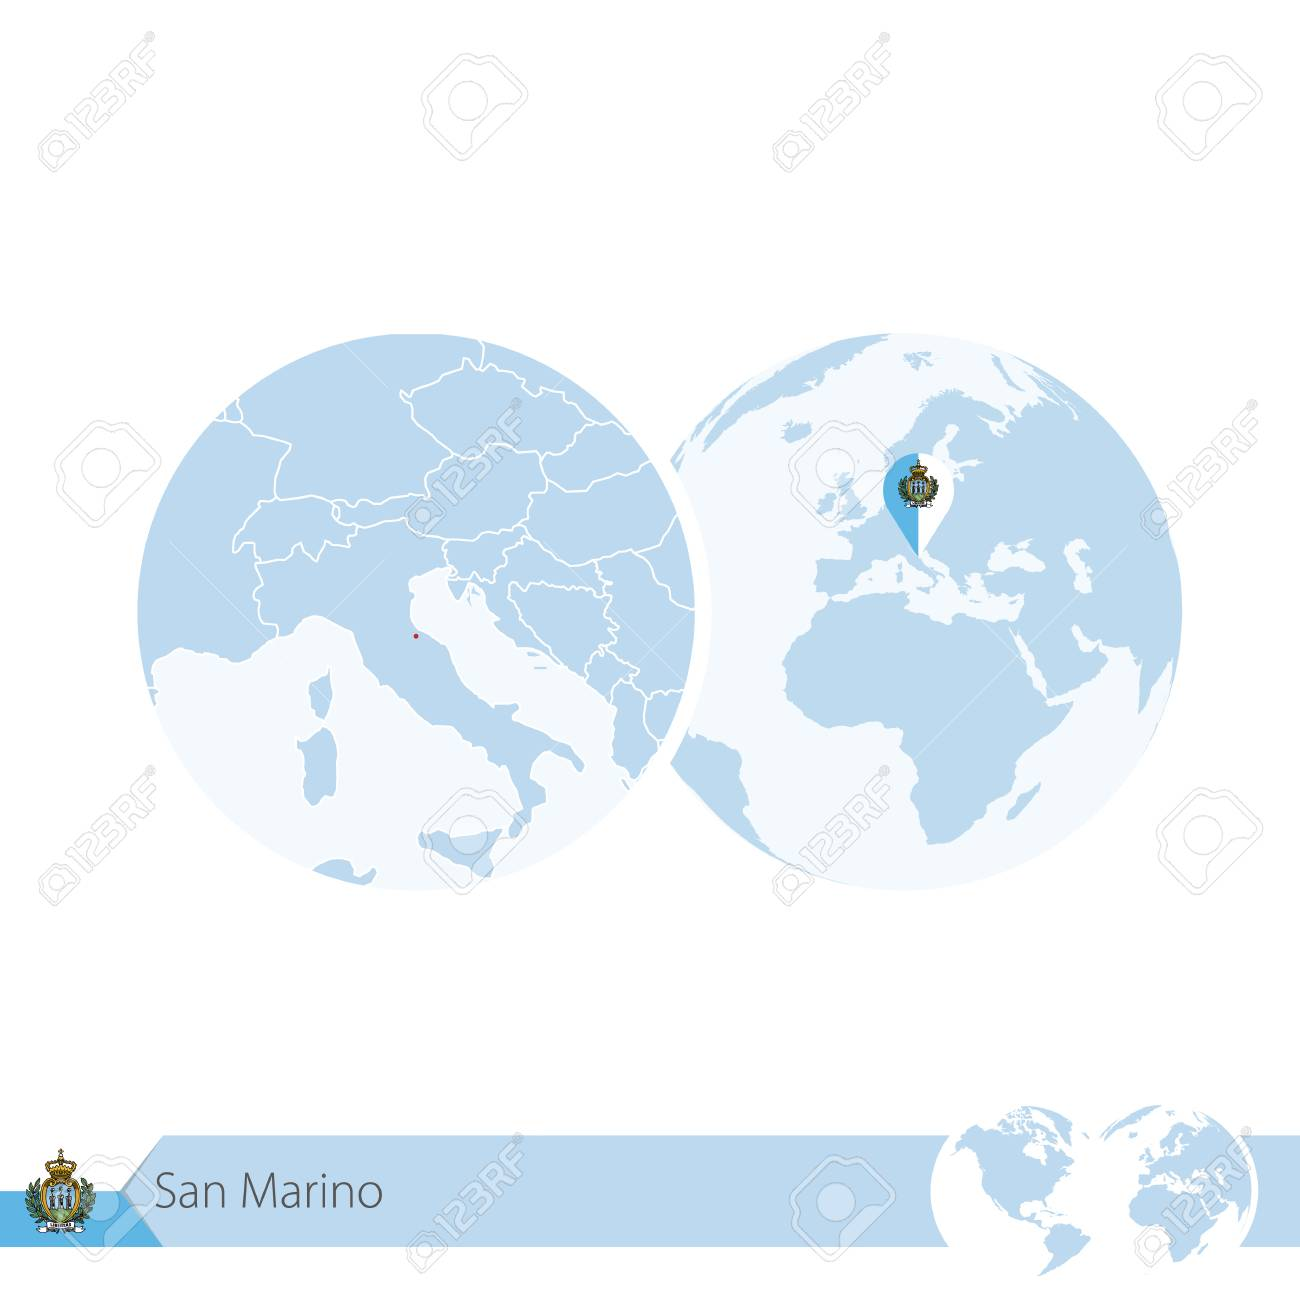 San Marino On World Map on tuvalu on world map, palau on world map, japan on world map, uzbekistan on world map, malta on world map, estonia on world map, andorra on world map, slovenia on world map, djibouti on world map, luxembourg on world map, serbia on world map, liechtenstein on world map, monaco on world map, brunei on world map, liberia on world map, singapore on world map, vatican city on world map, montenegro on world map, kosovo on world map, liechtenstien on world map,